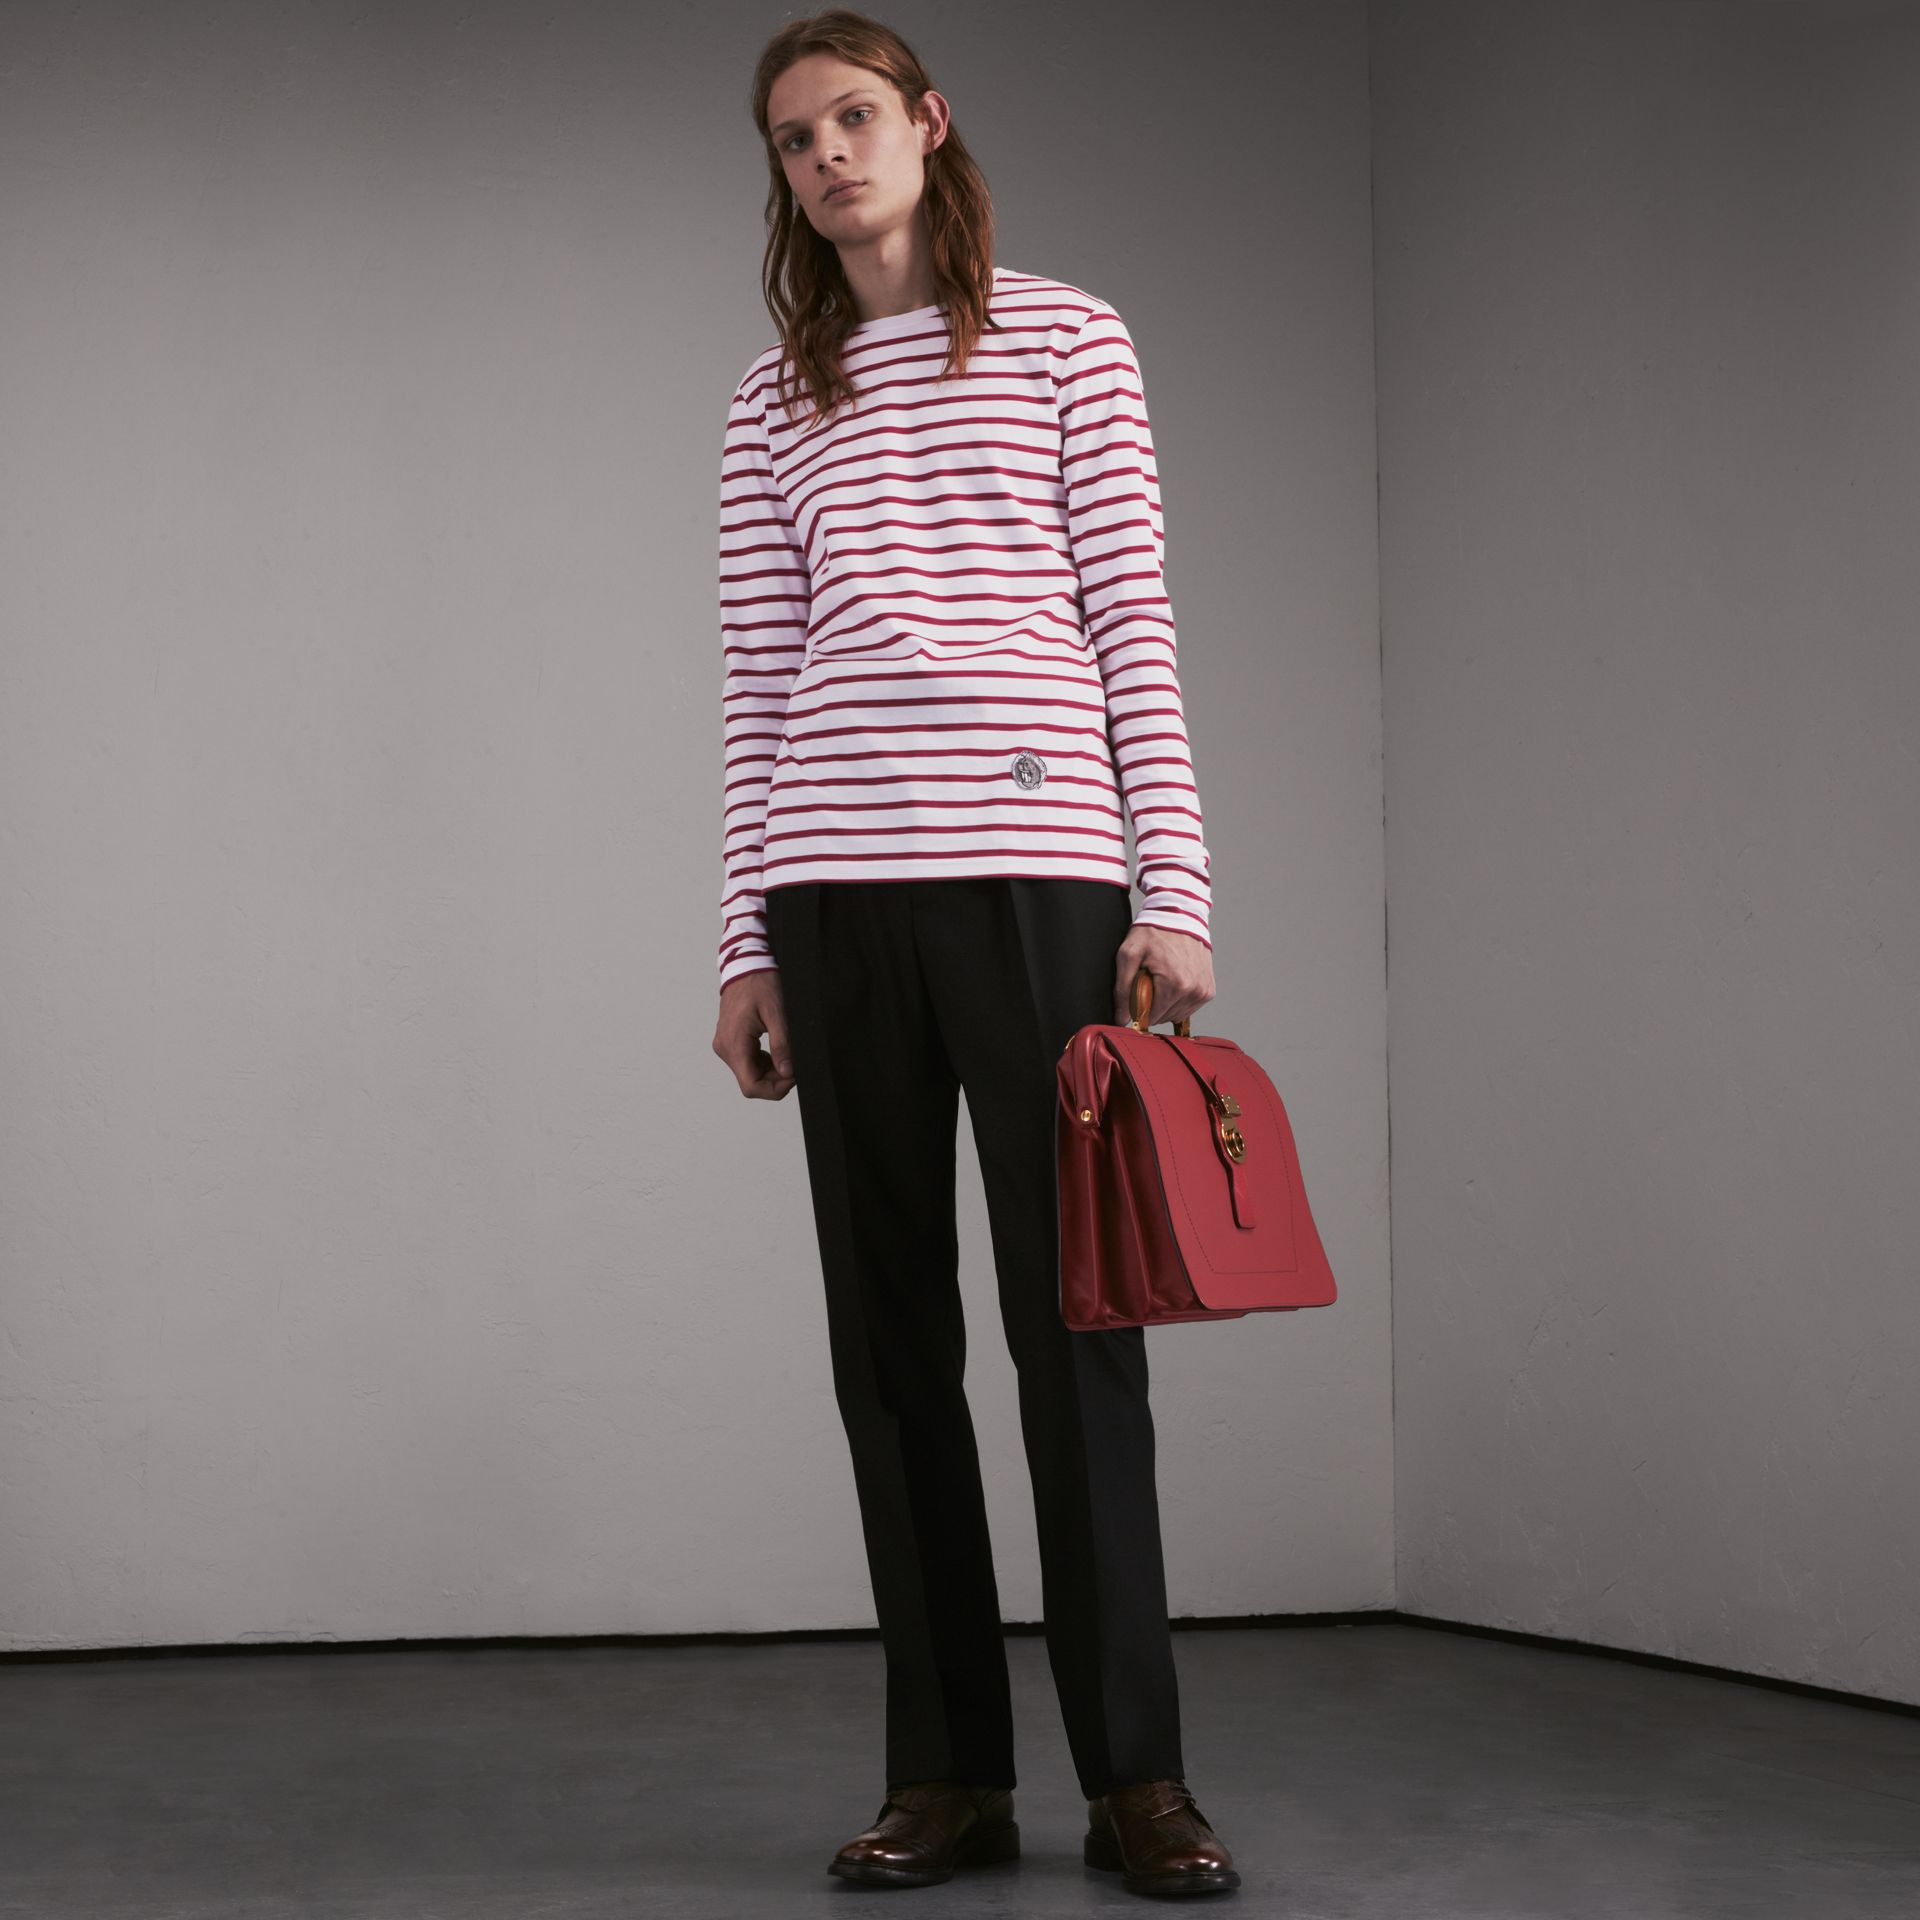 Unisex Pallas Heads Motif Breton Stripe Cotton Top in Parade Red - Men | Burberry - gallery image 6